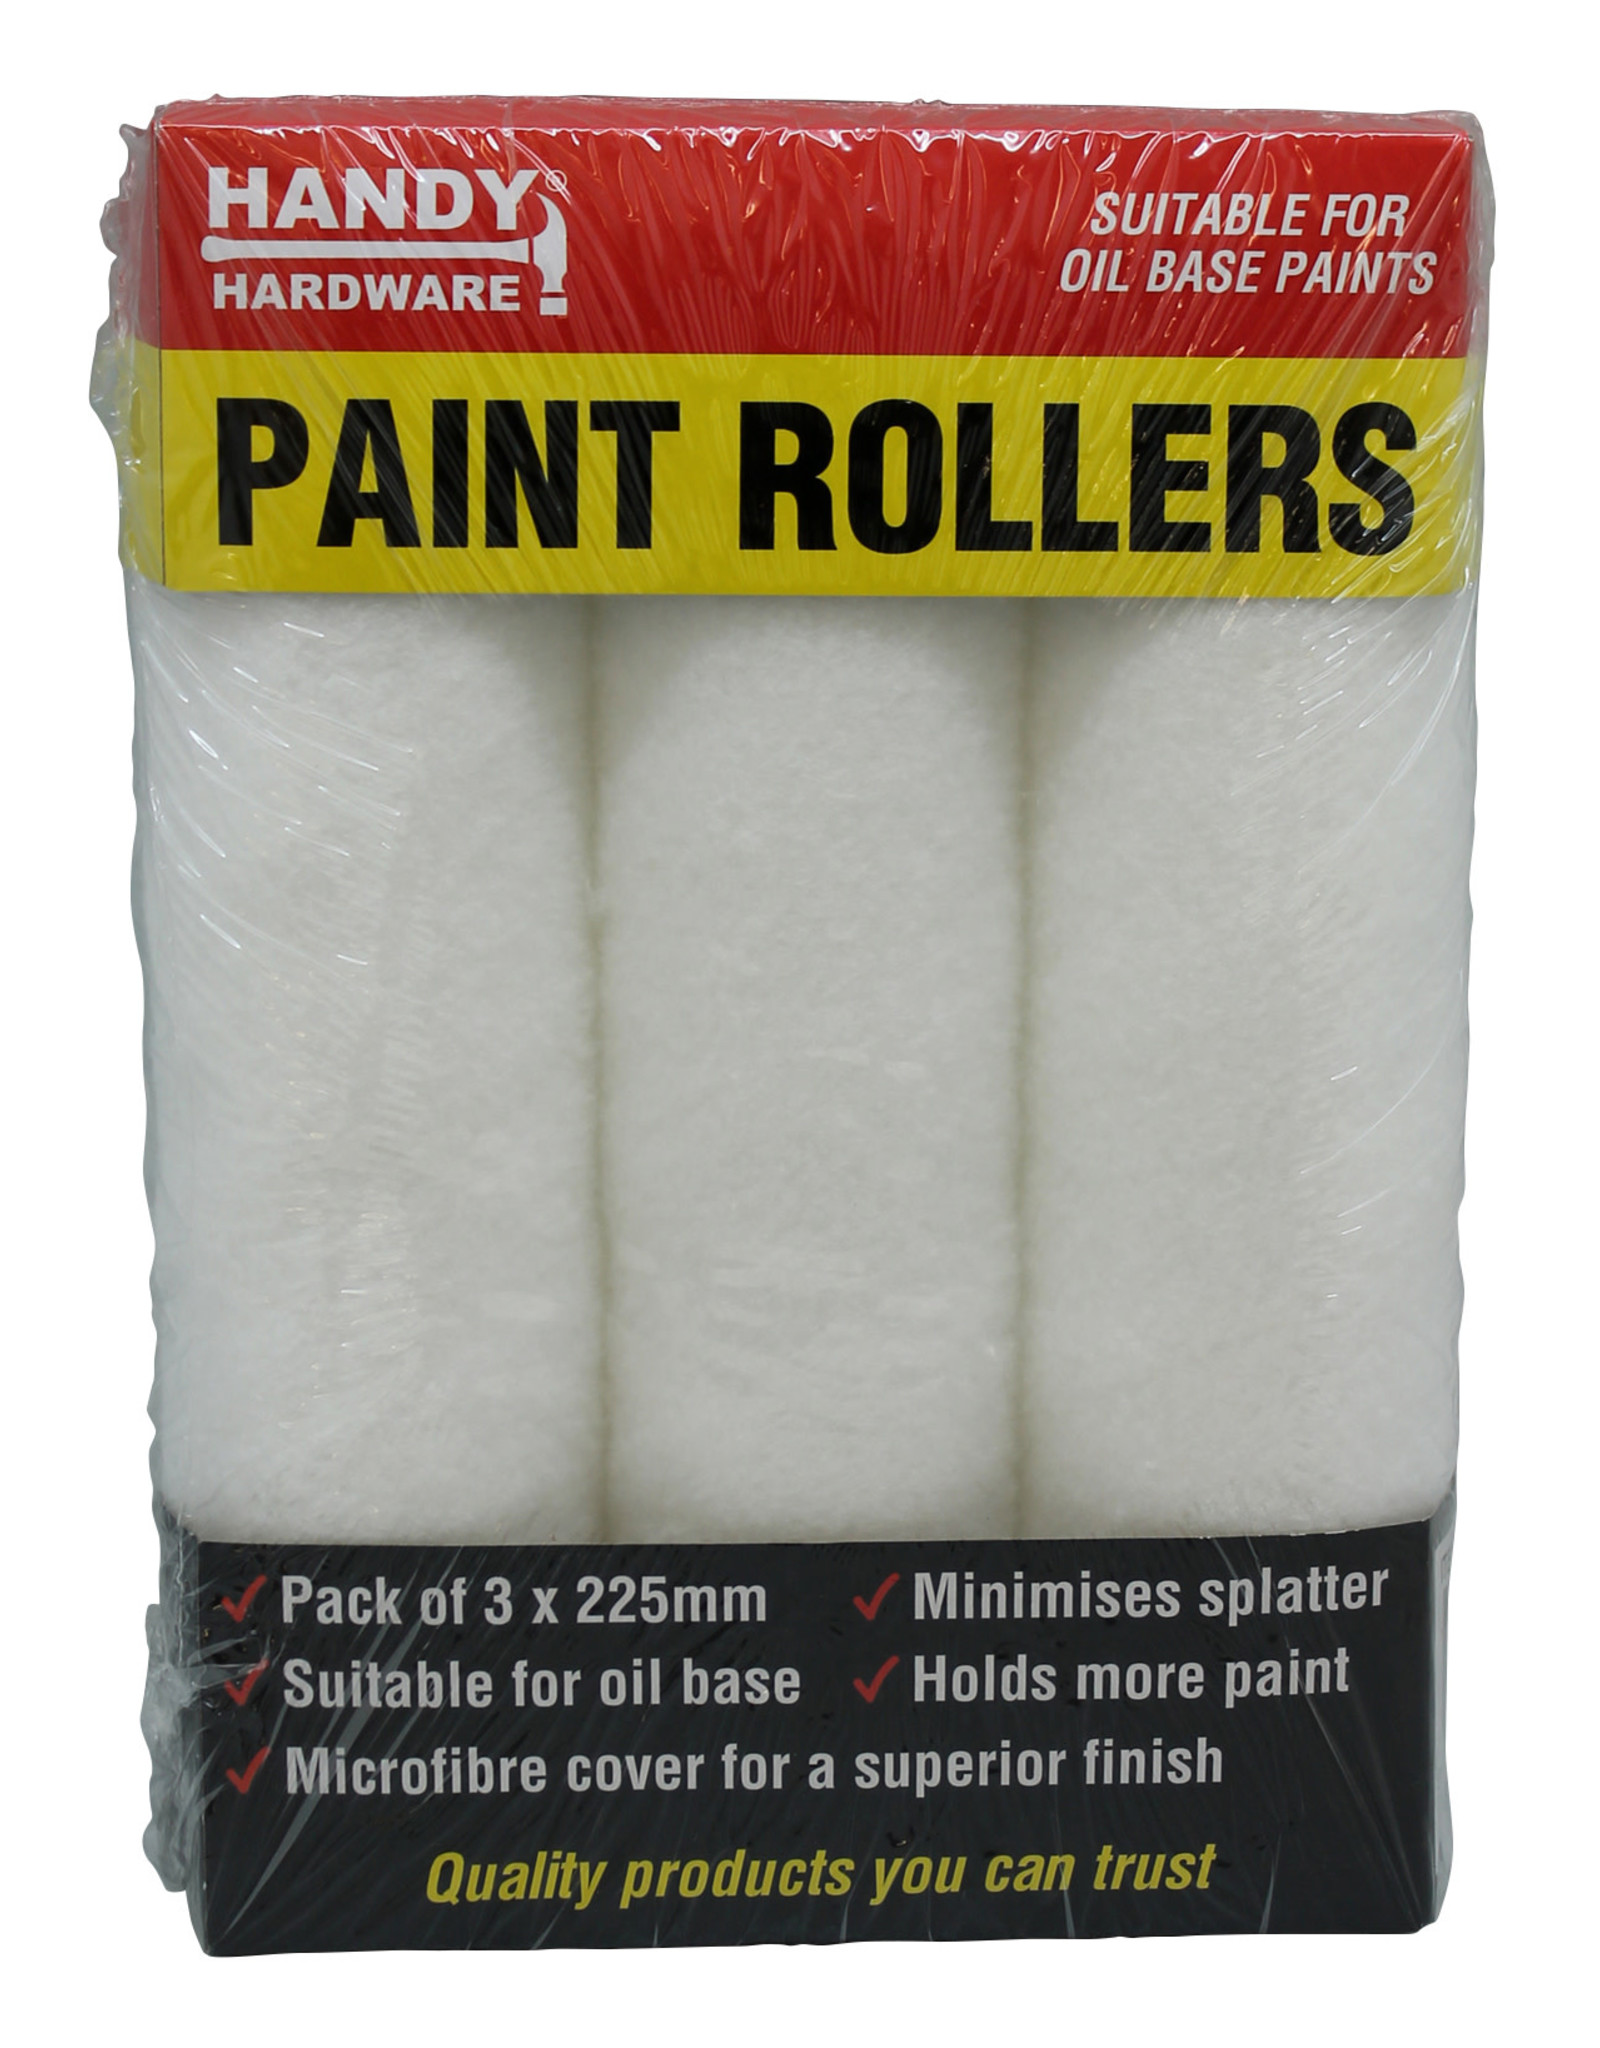 Painting Rollers